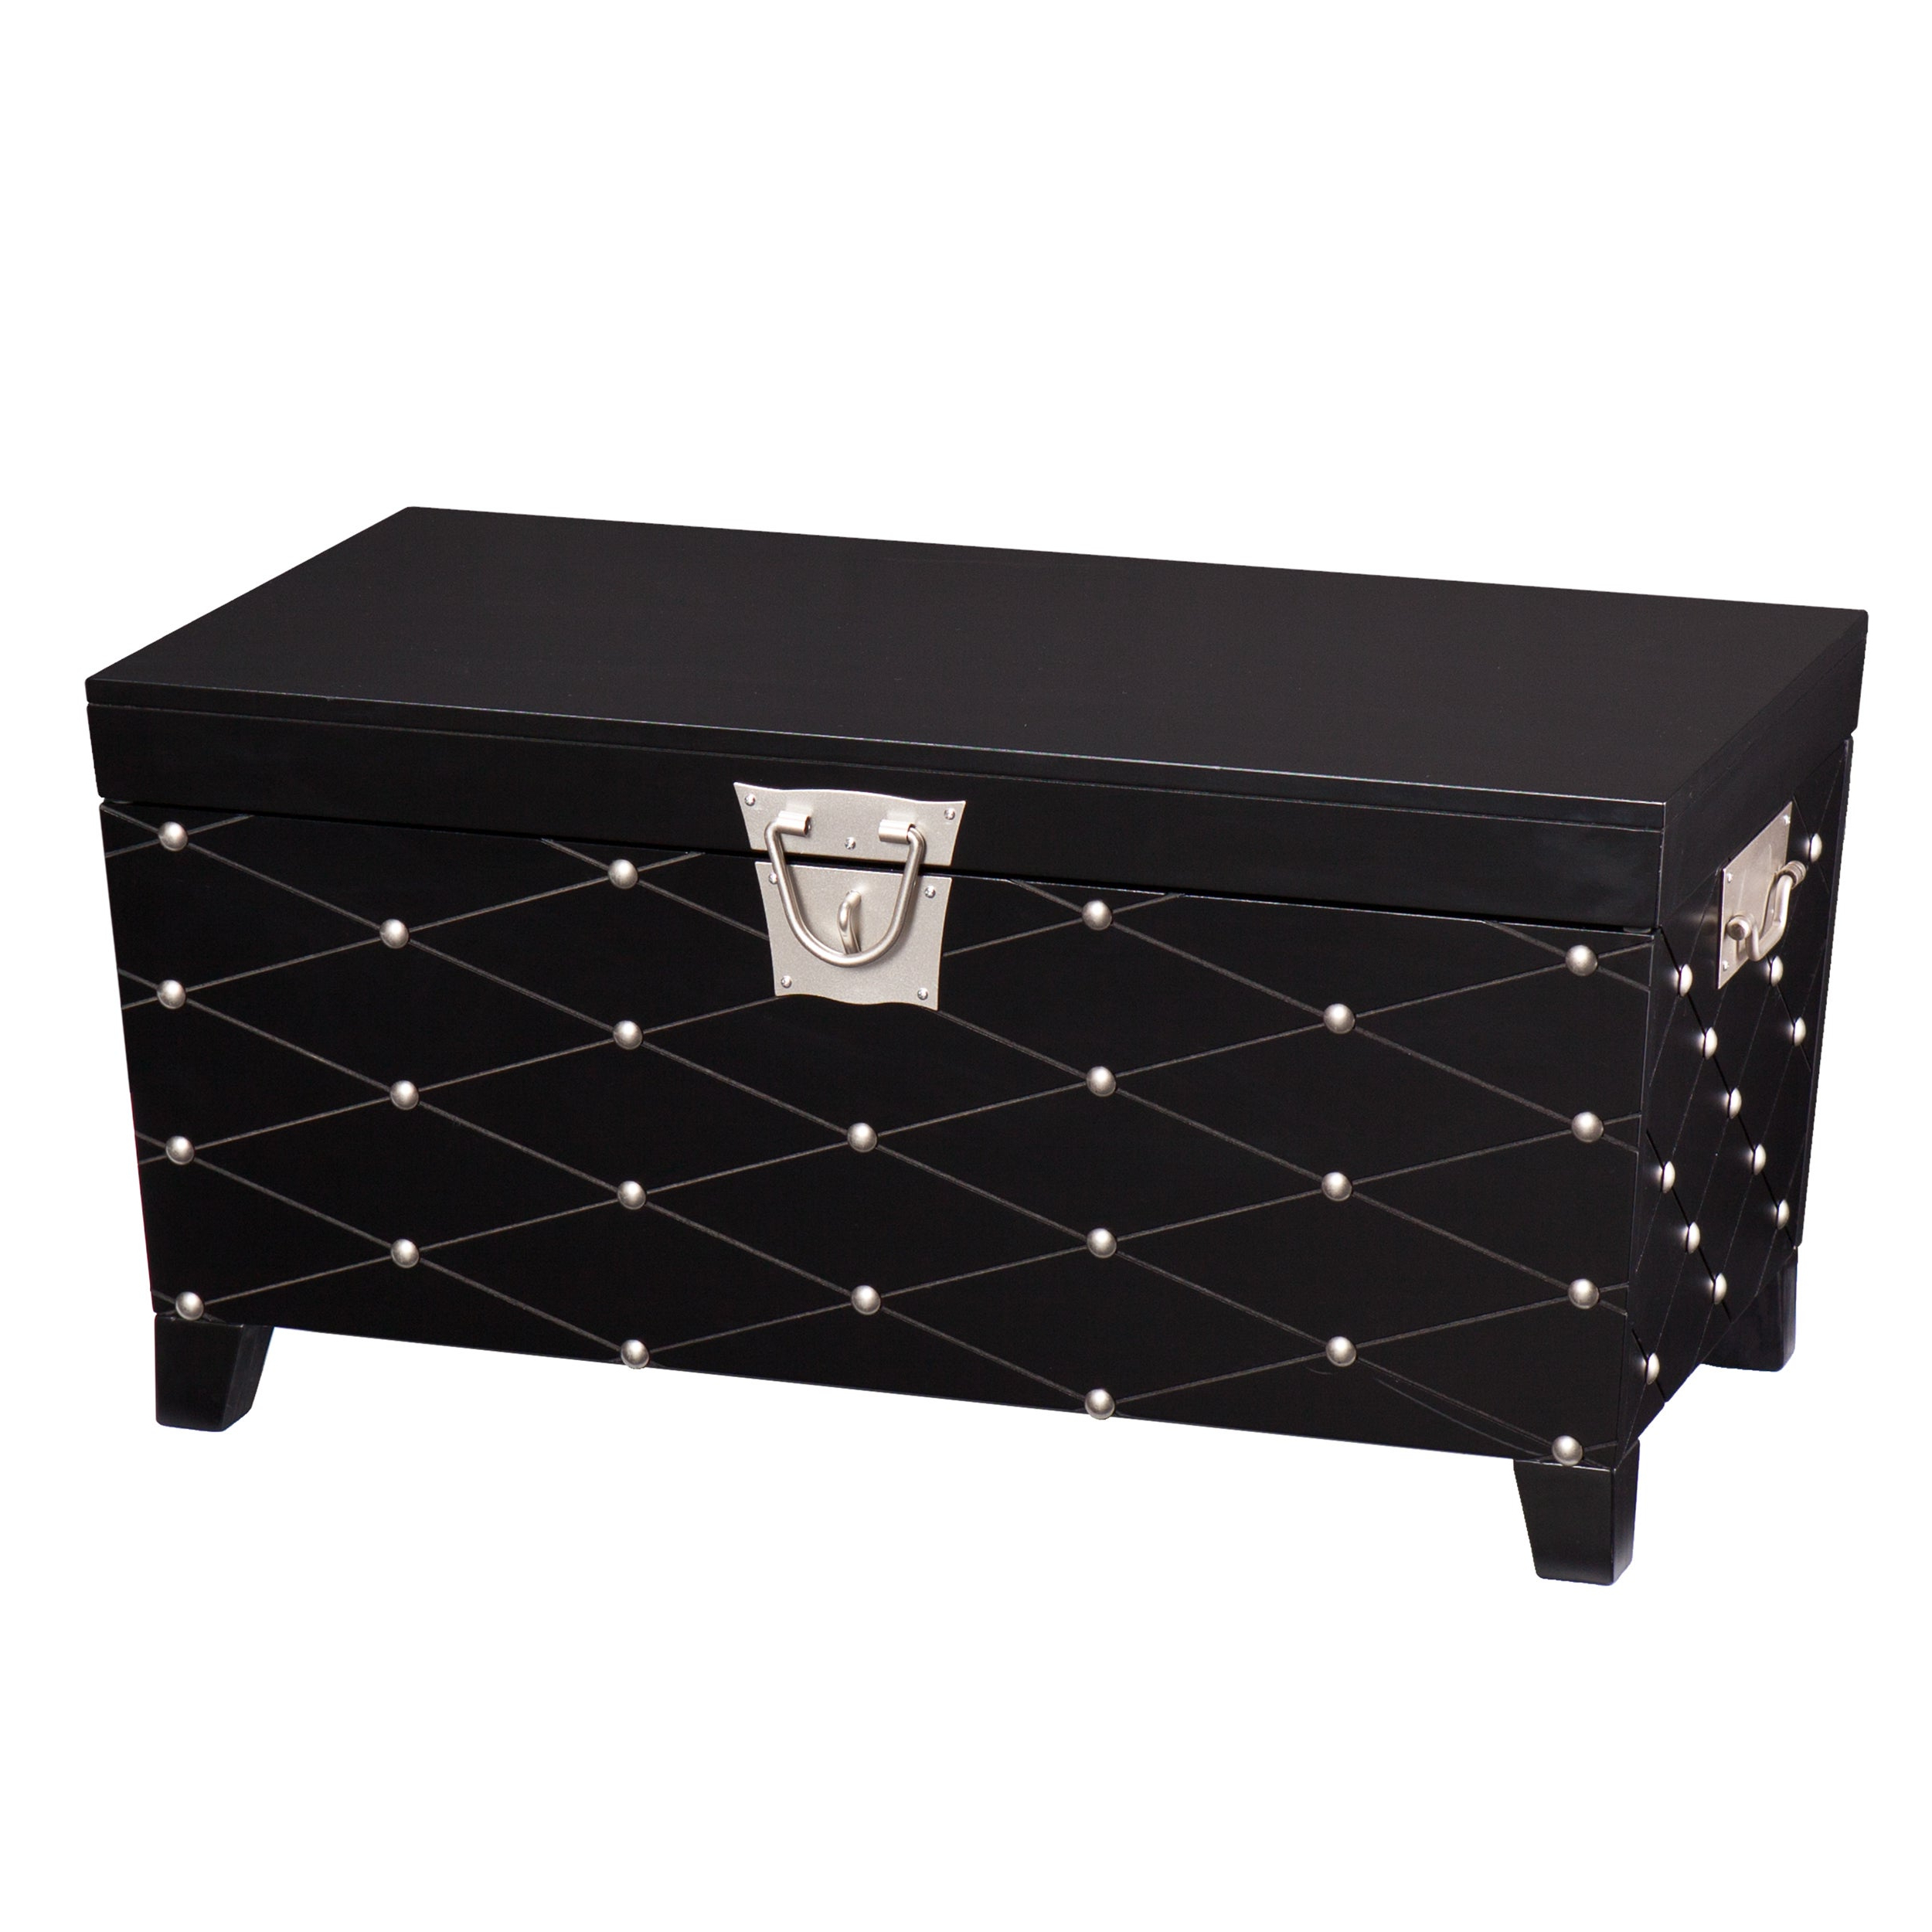 Copper Grove Liatris Black And Satin Silver Coffee/ Cocktail Table Trunk Pertaining To Fashionable Copper Grove Liatris Nailhead Espresso Cocktail Tables (View 5 of 20)